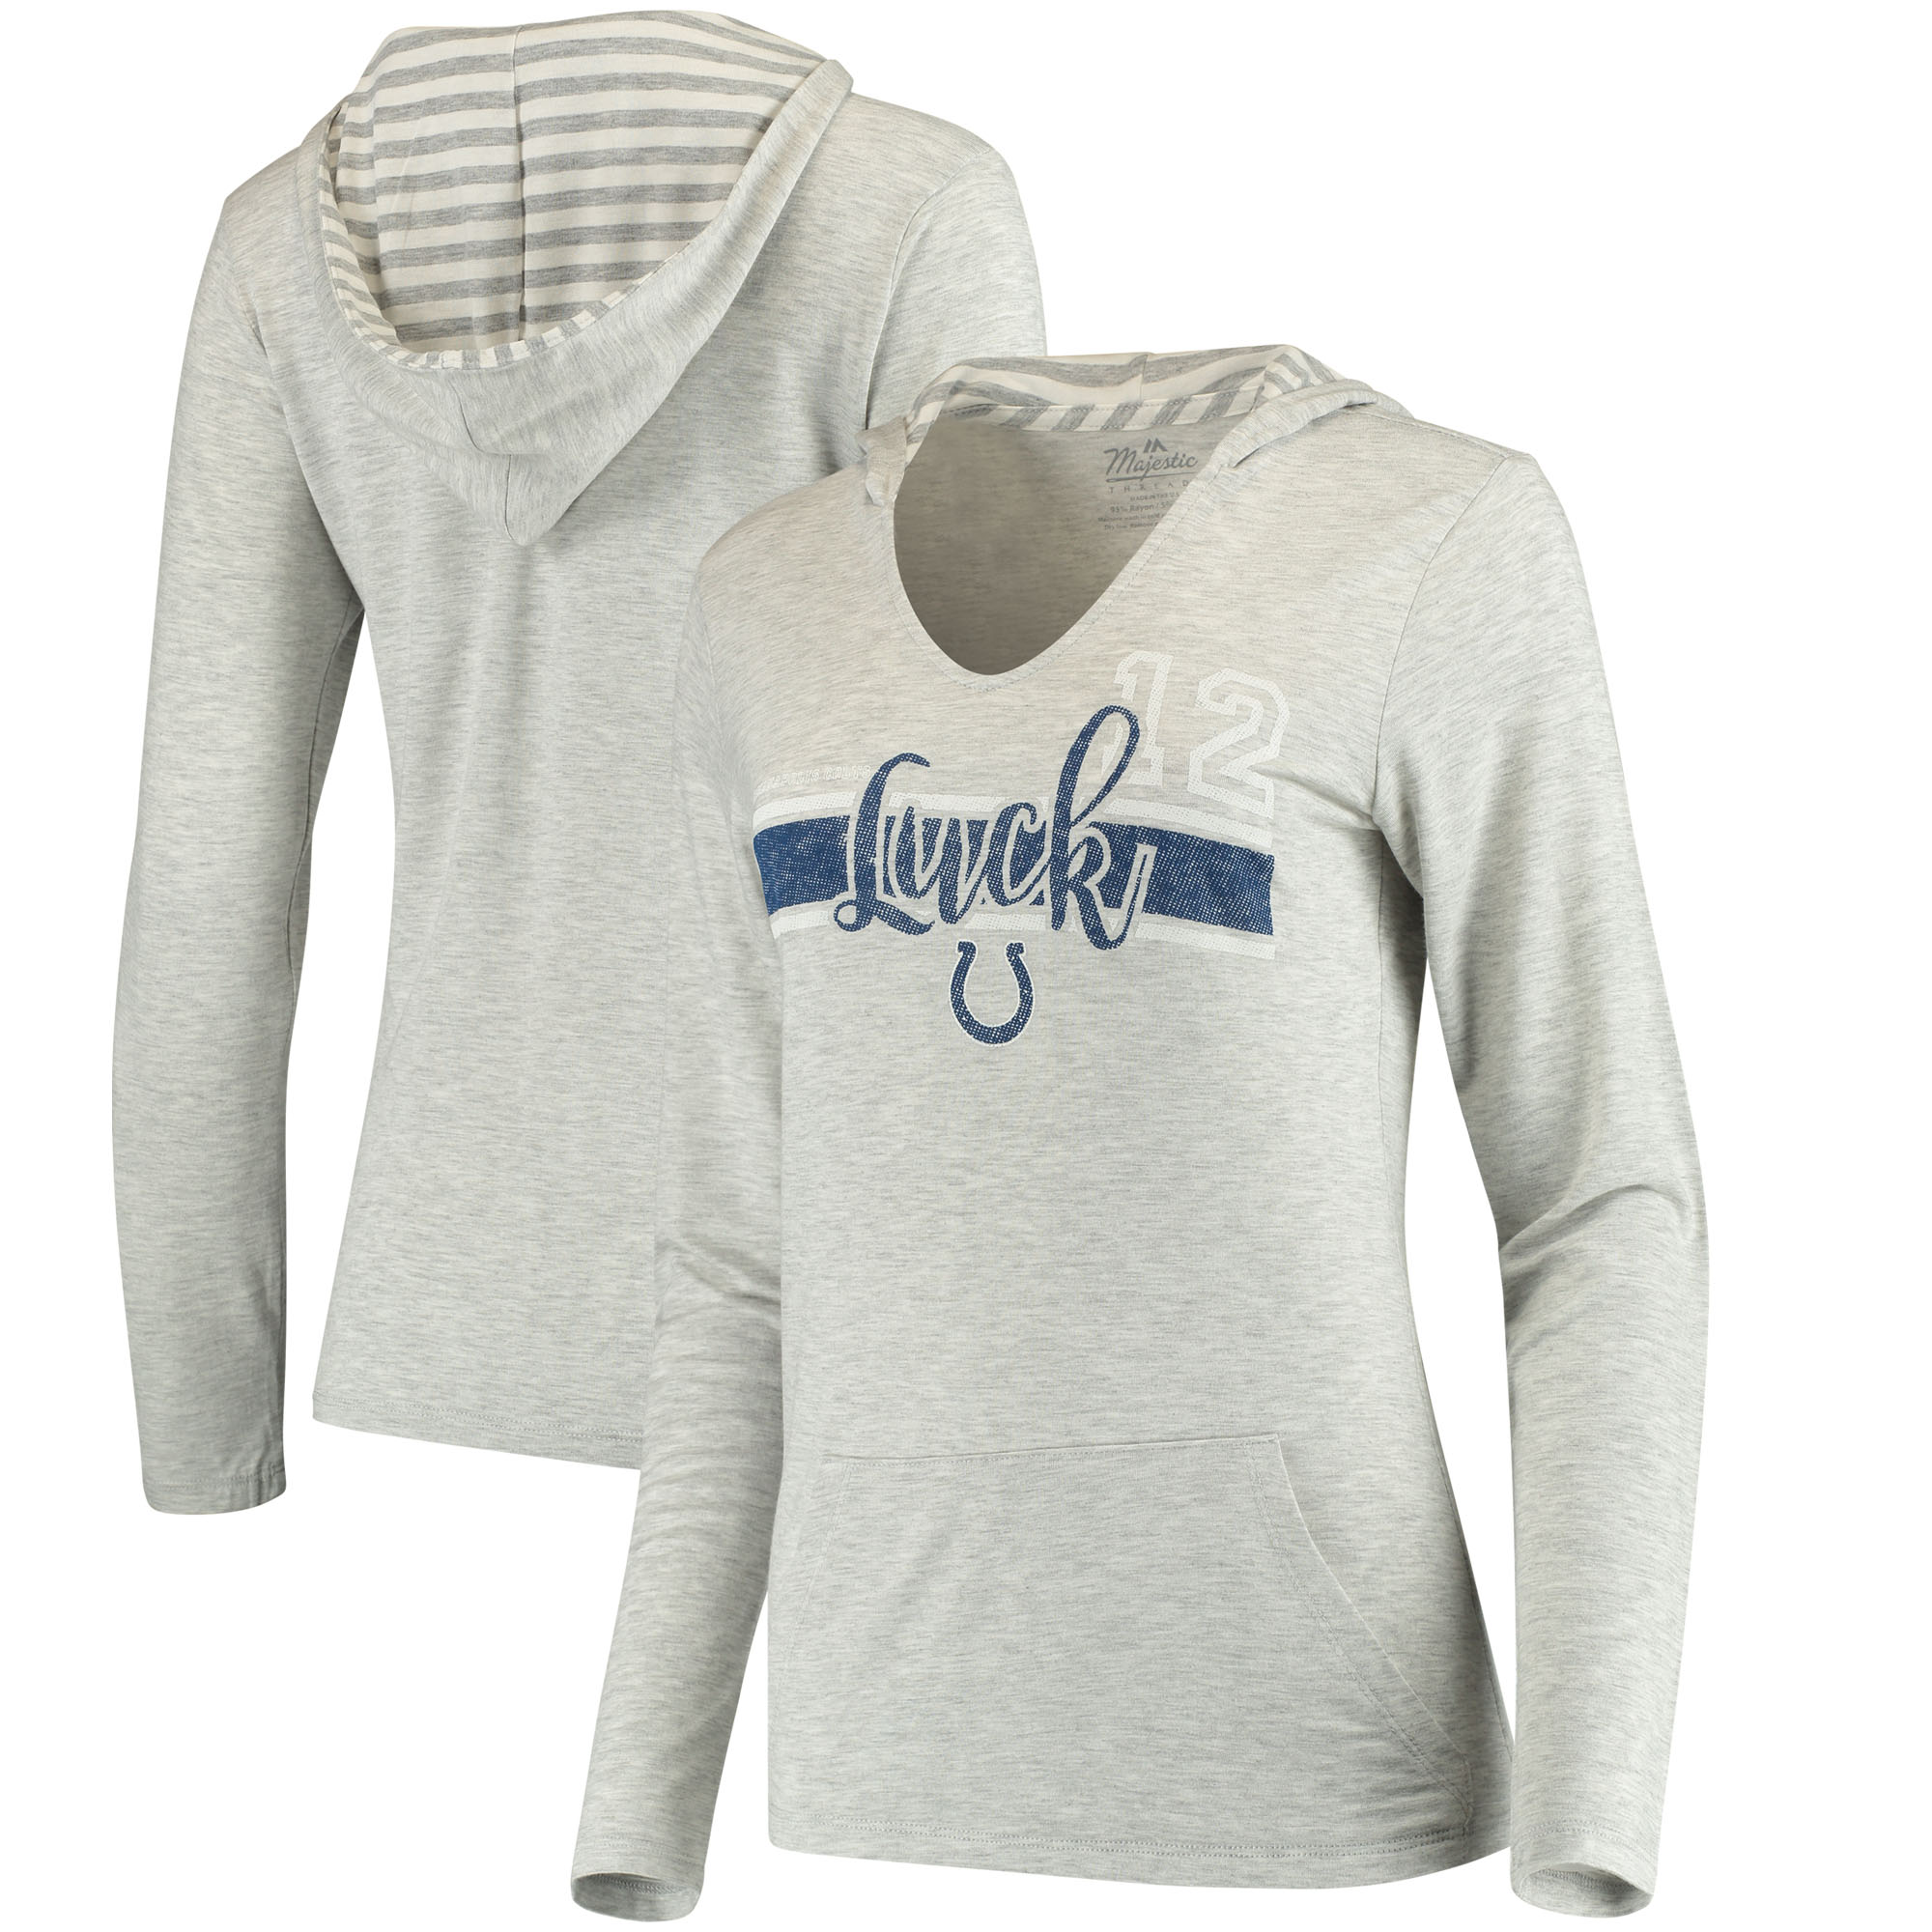 Andrew Luck Indianapolis Colts Women's Pocket Name & Number Hoodie T-Shirt - Gray